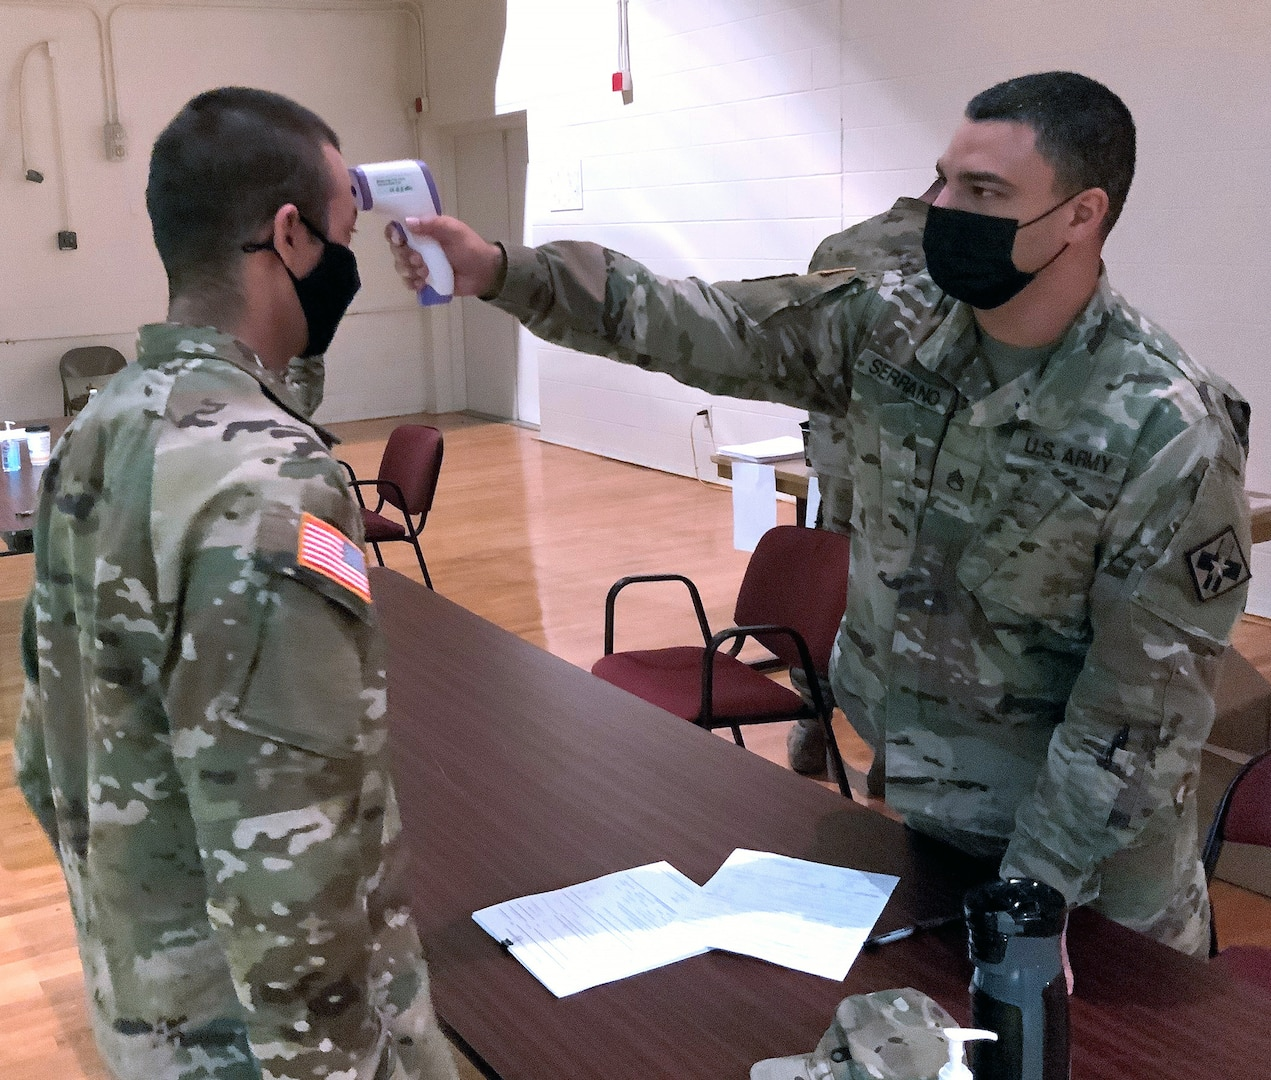 Staff Sgt. Eric Serrano, an Instructor with the 32nd Medical Brigade, screens a returning Holiday Block Leave Soldier.